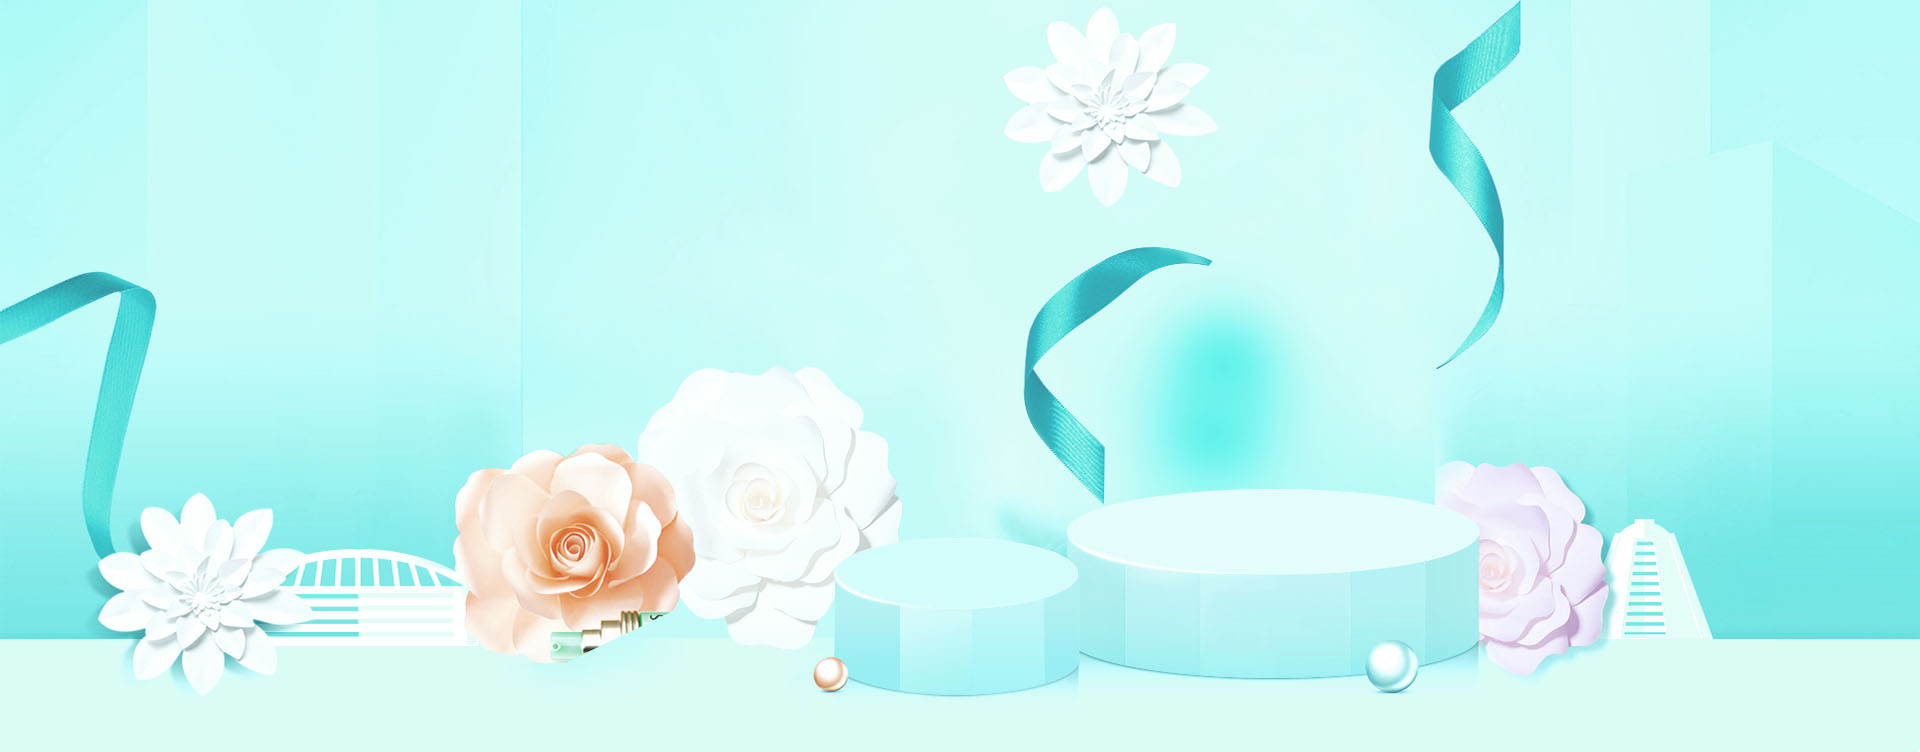 taobao beauty cosmetics poster background  skin  care